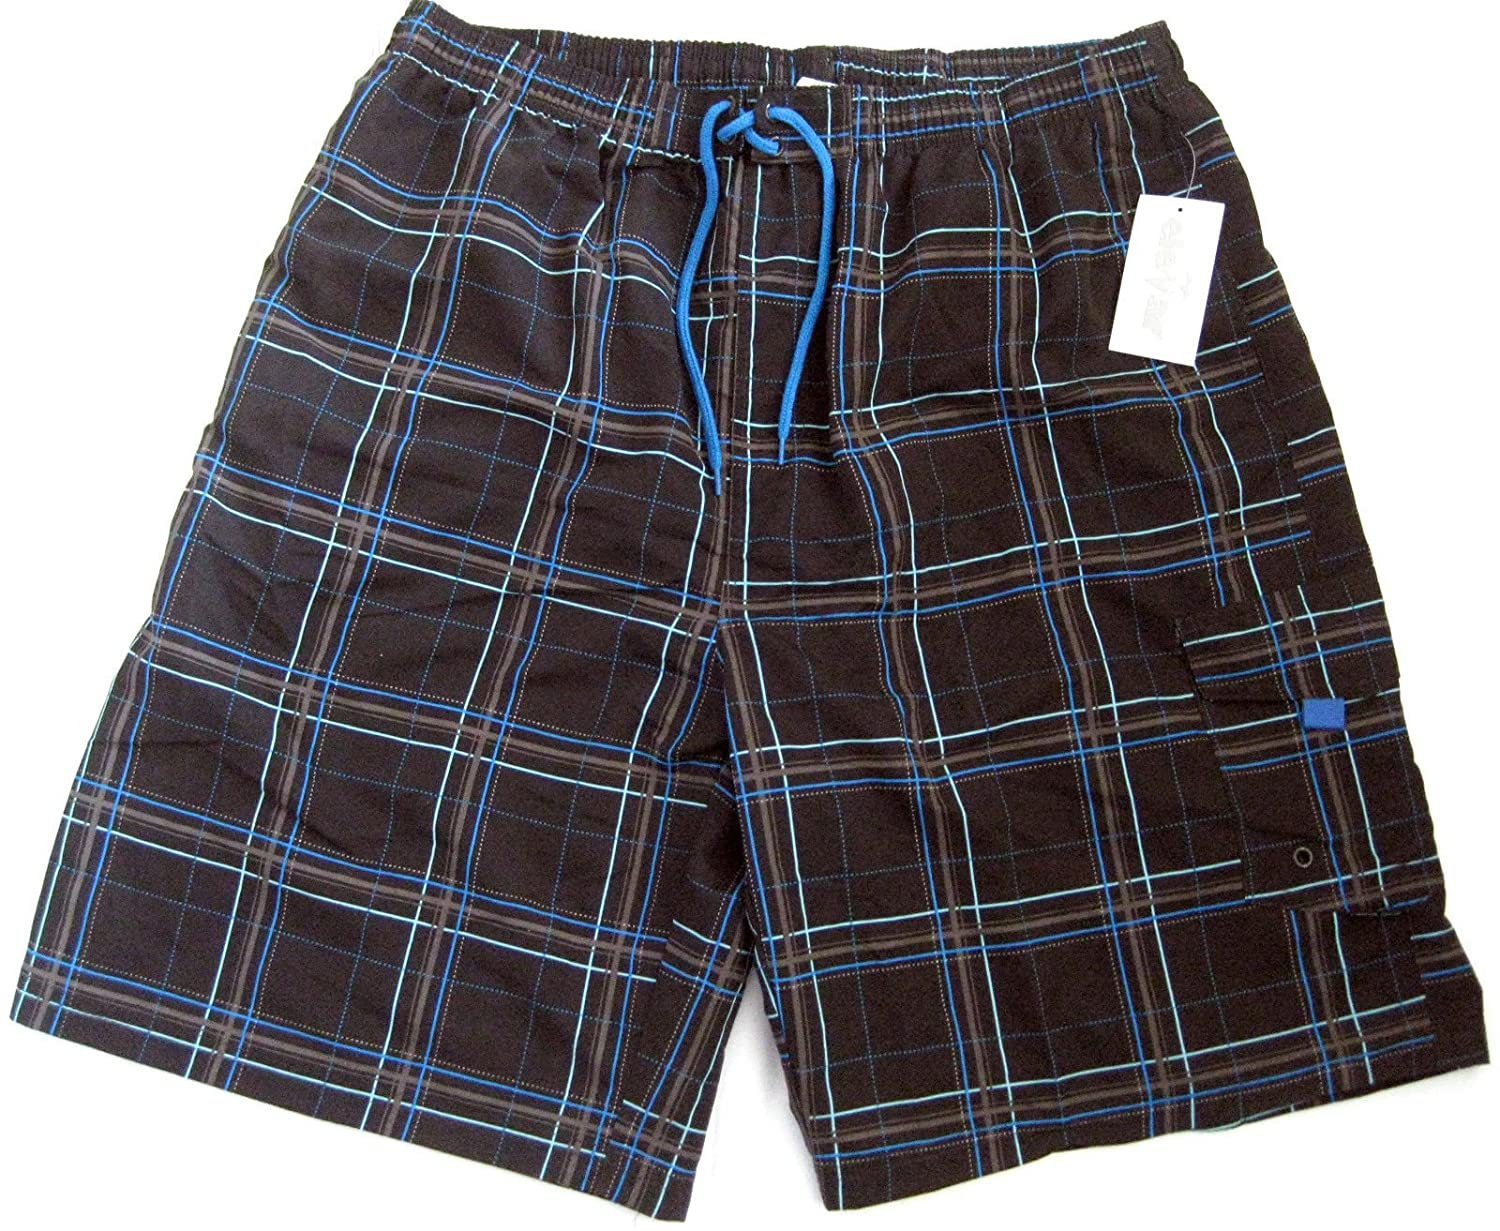 Elemar Men's Swimming Shorts Chequered espresso / Turquoise, 5 M